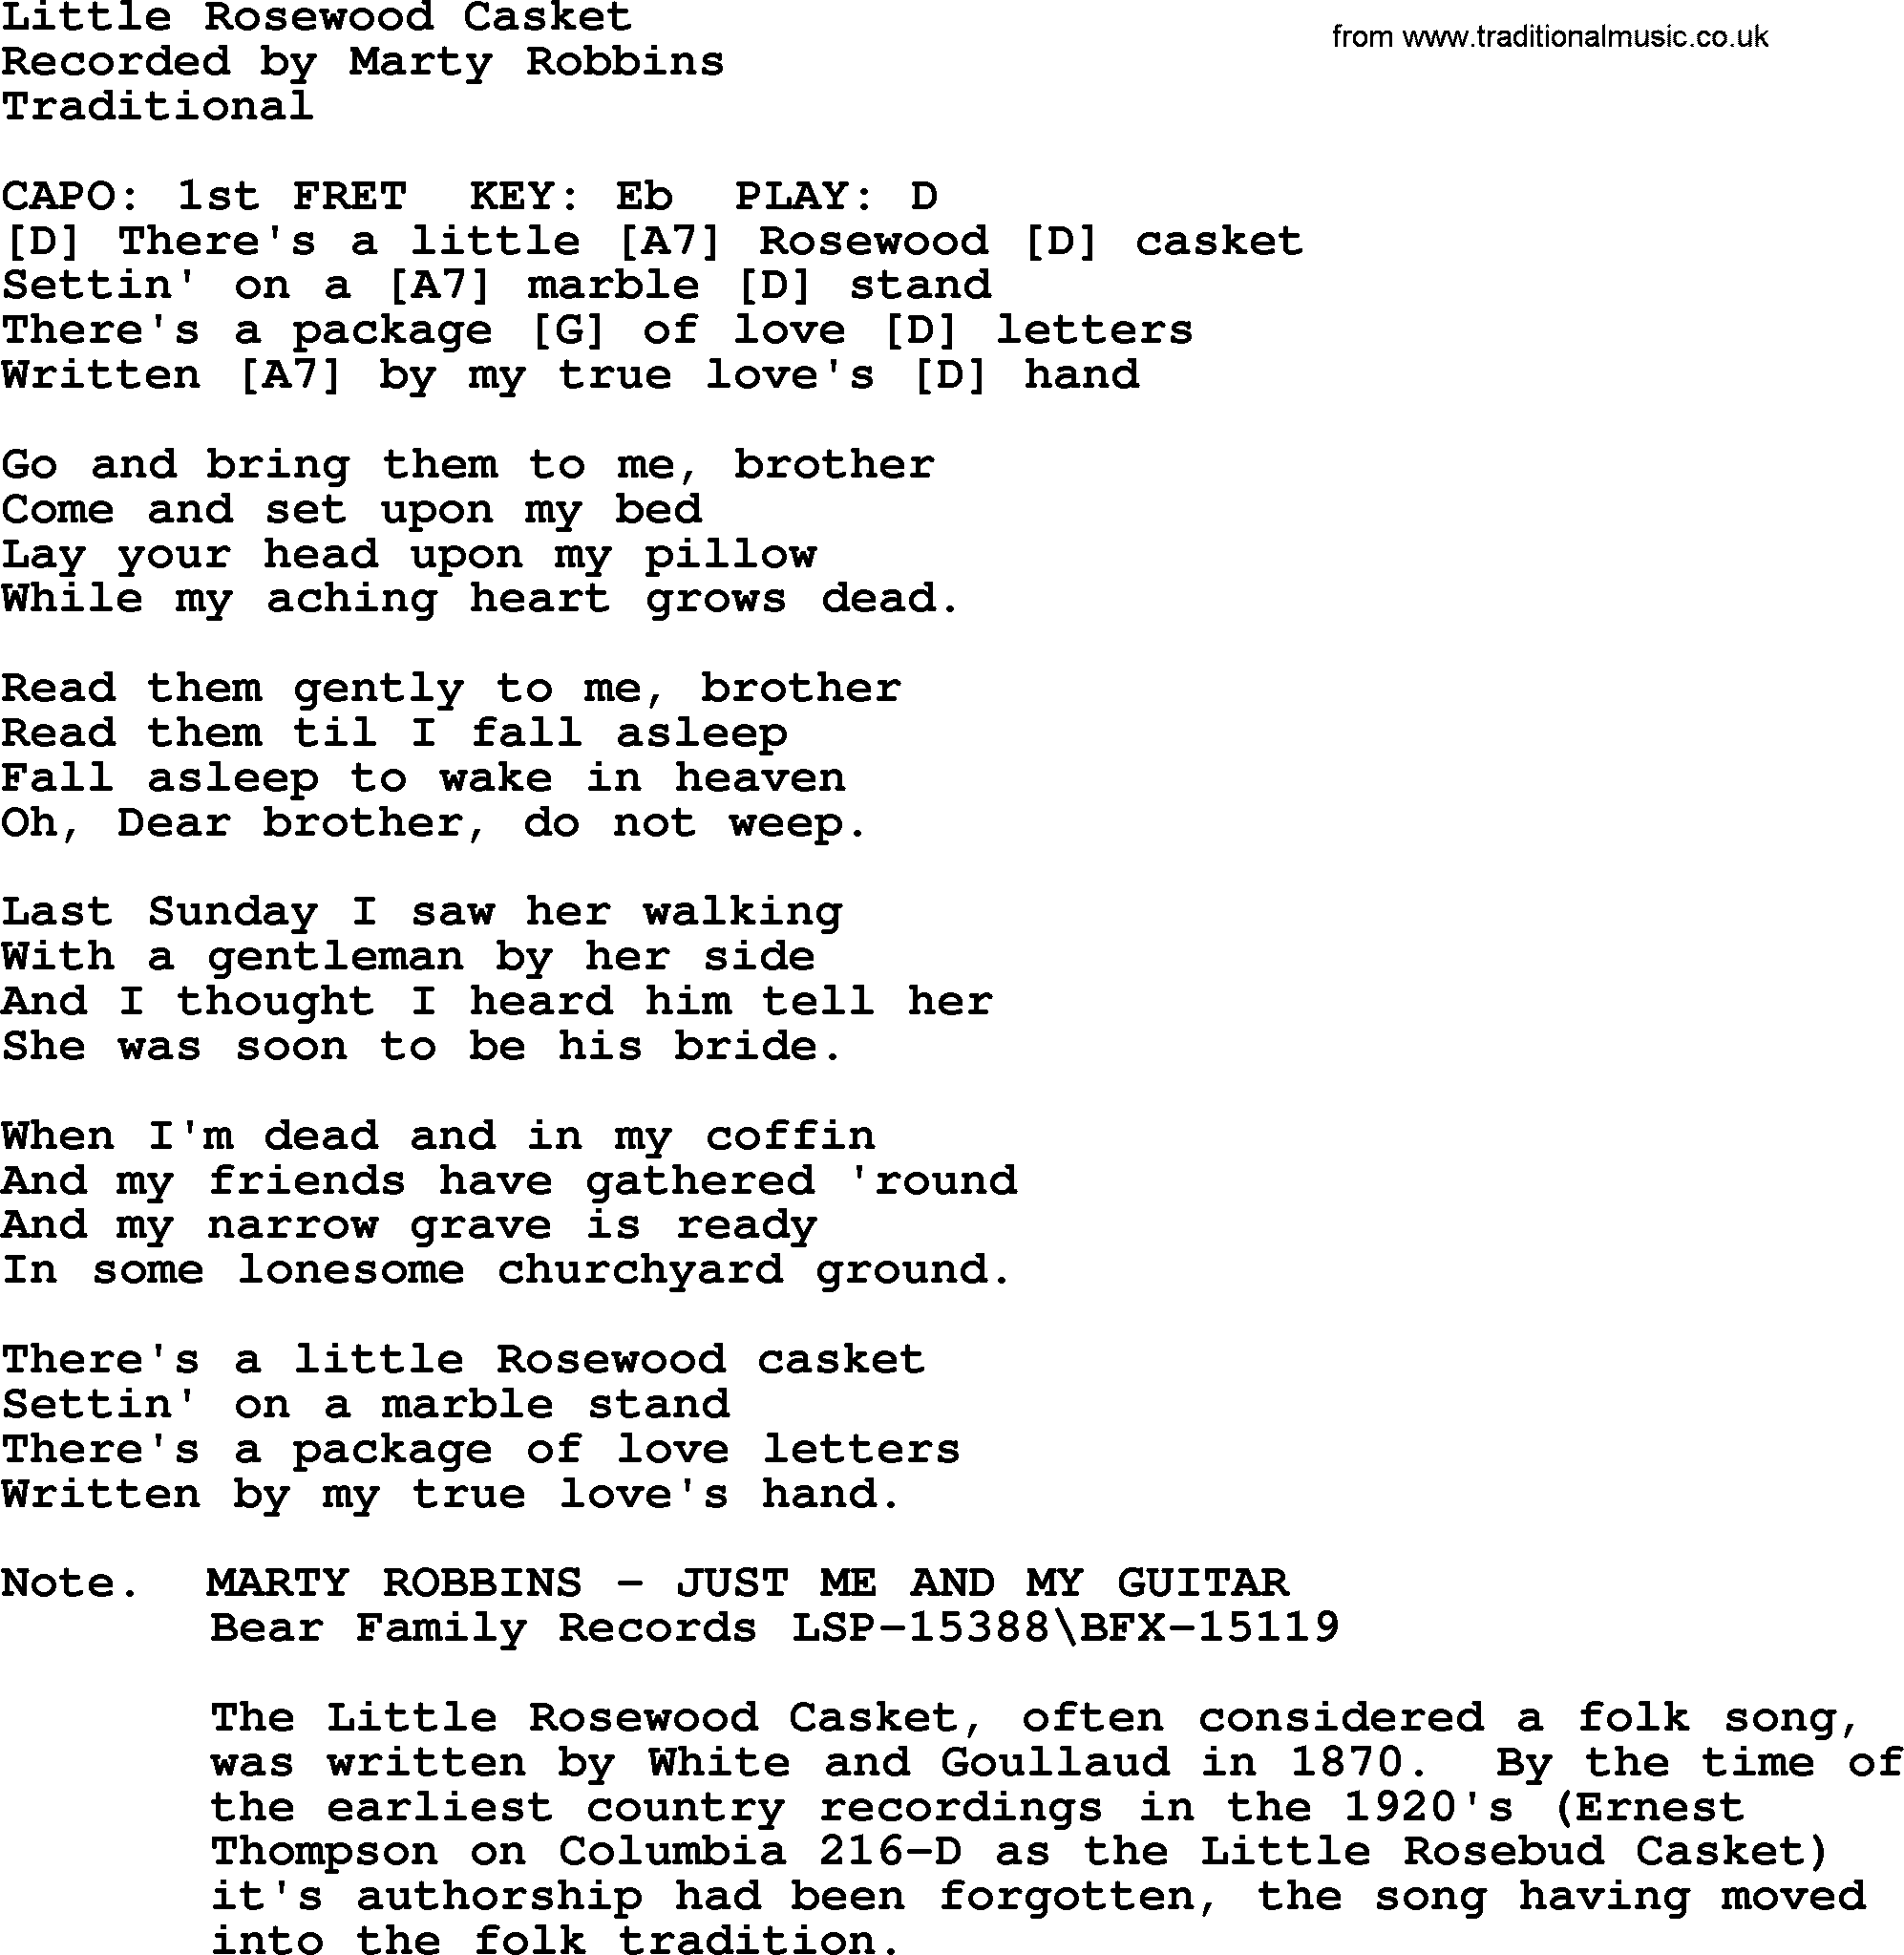 Little Rosewood Casket, by Marty Robbins   lyrics and chords